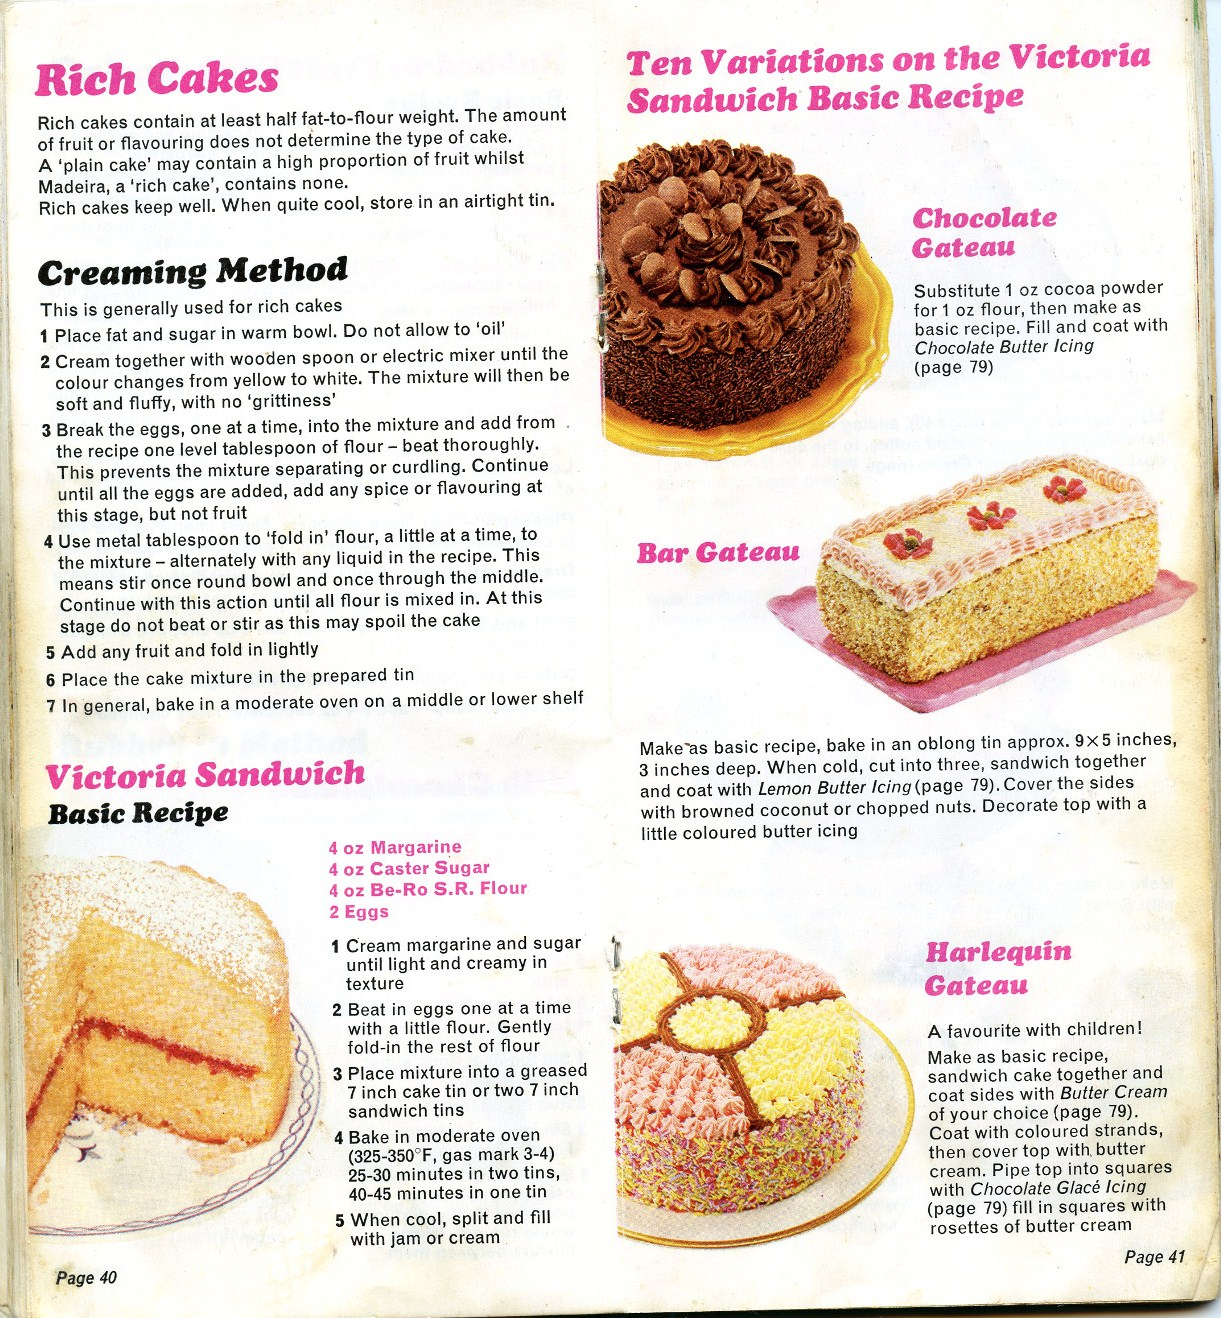 I Will Give Tips That Are Very Easy To Make A Smooth Cake.